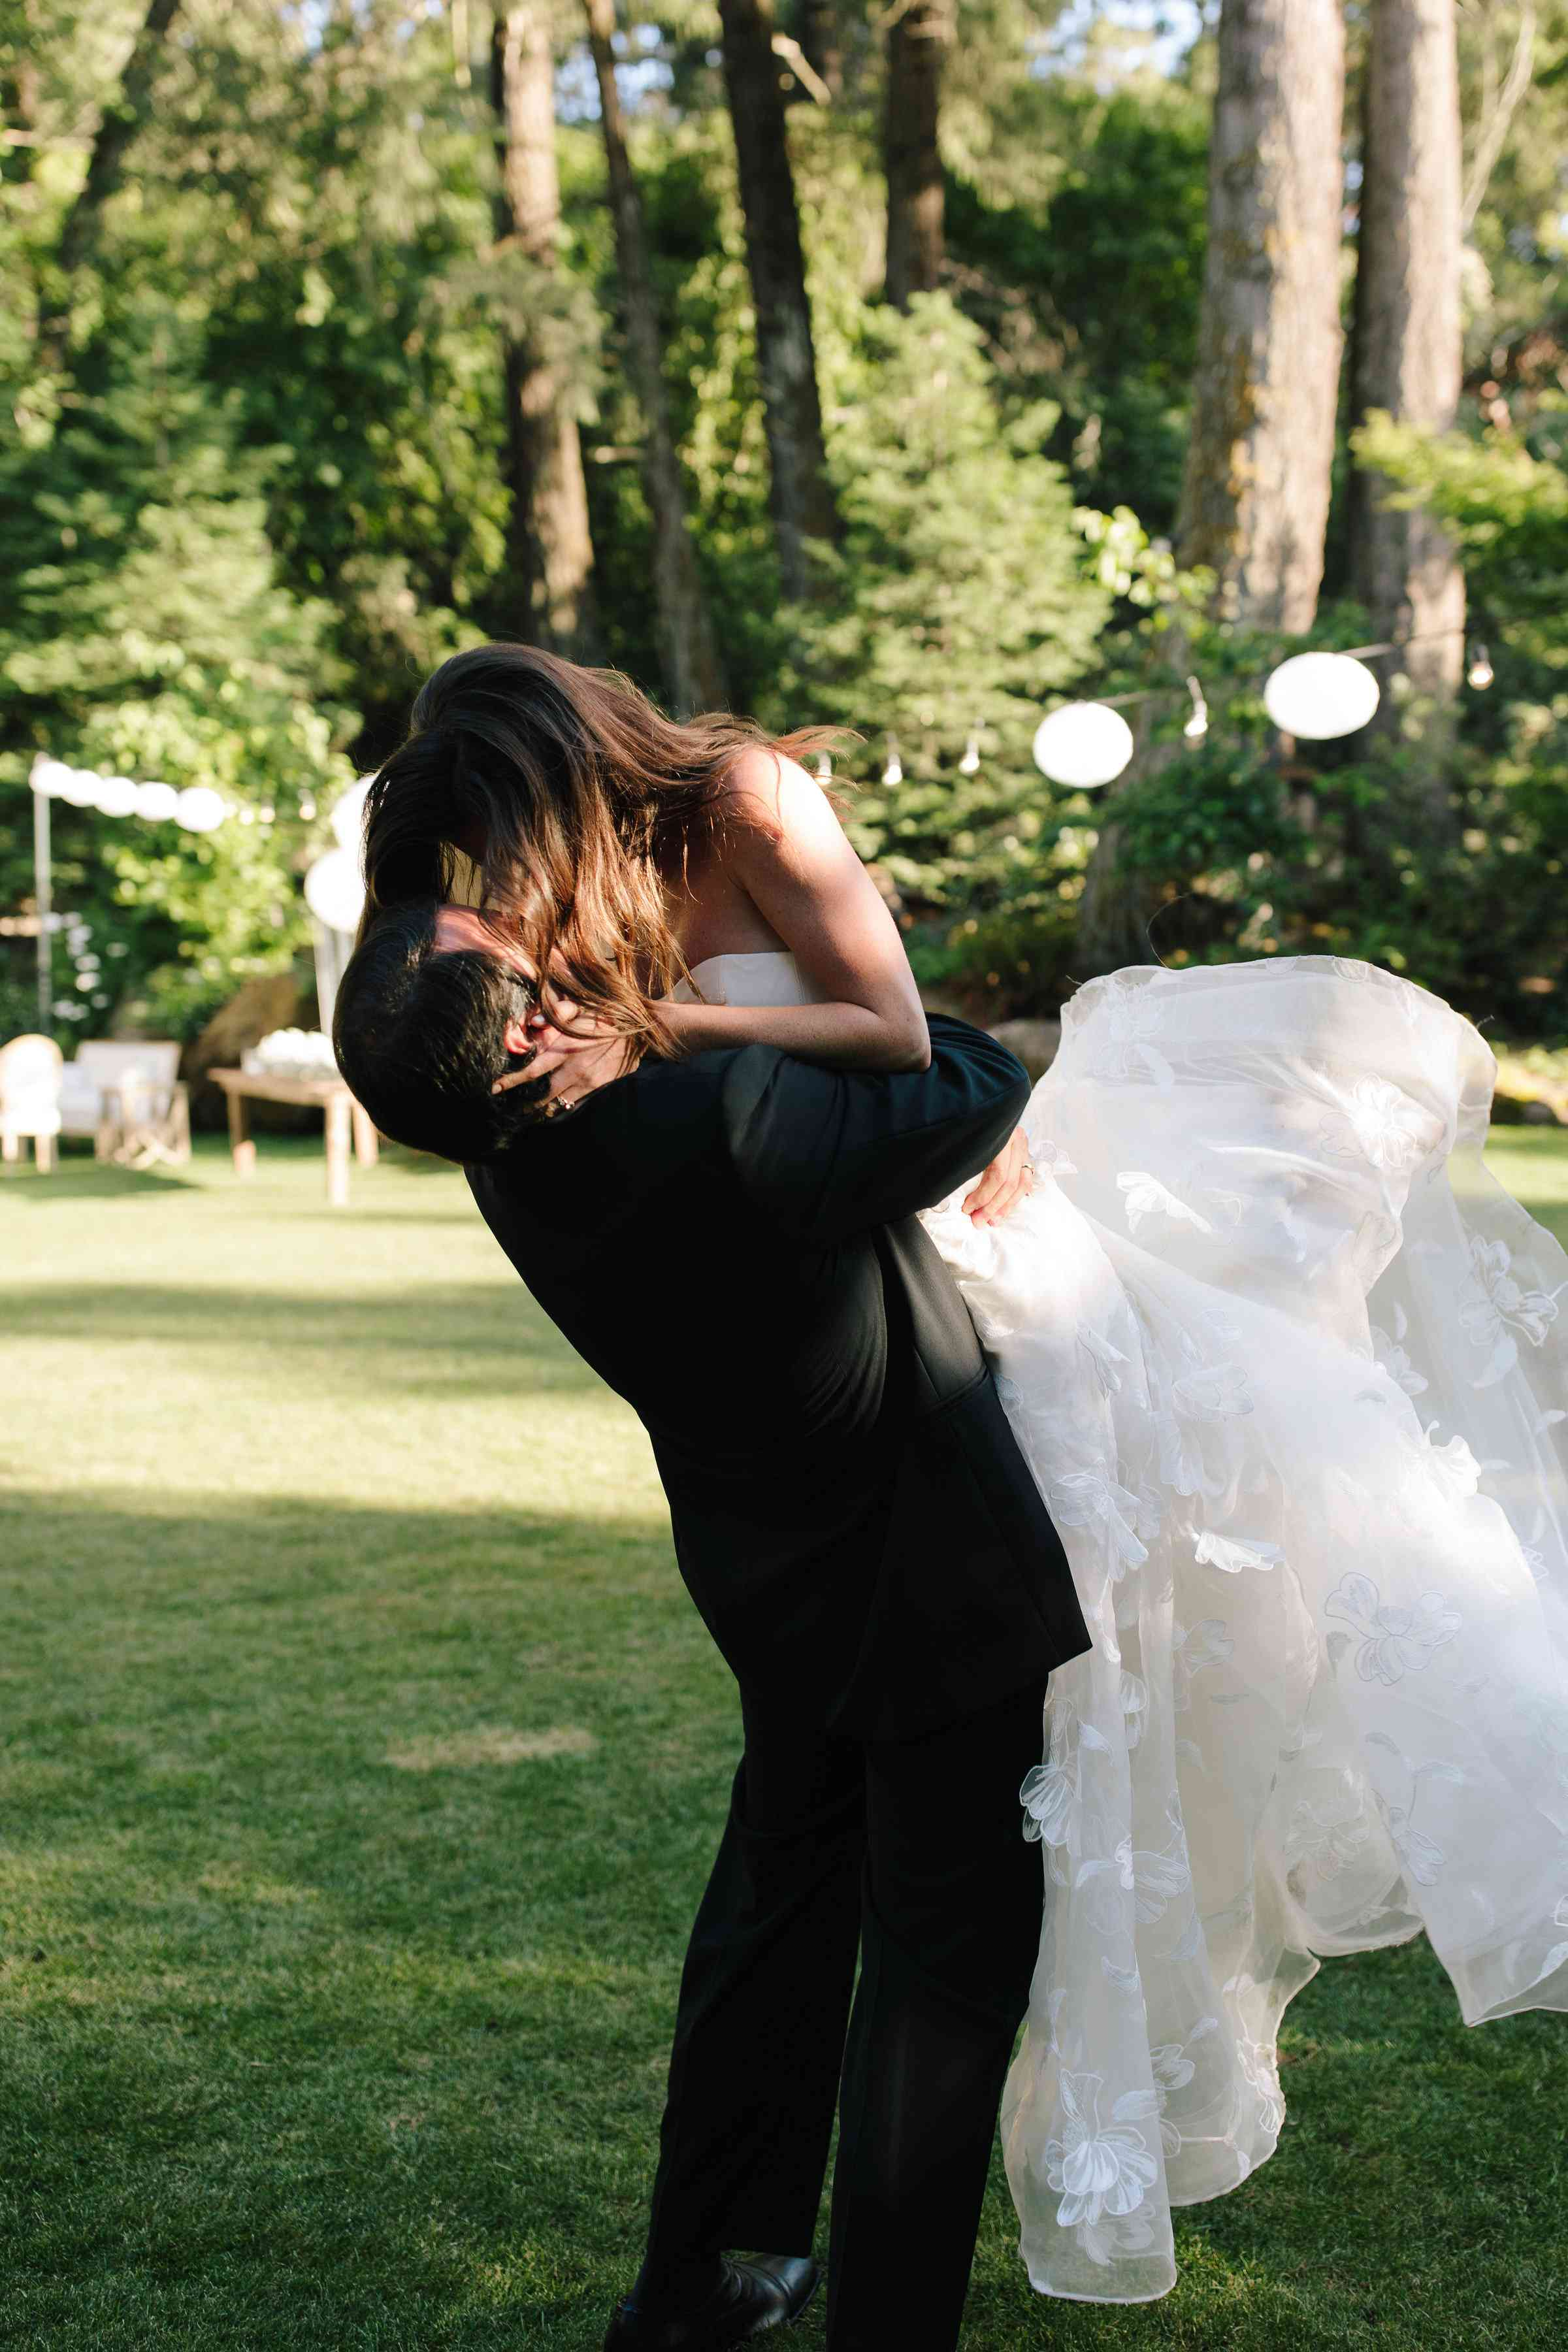 <p>groom picking up bride and kissing her</p><br><br>